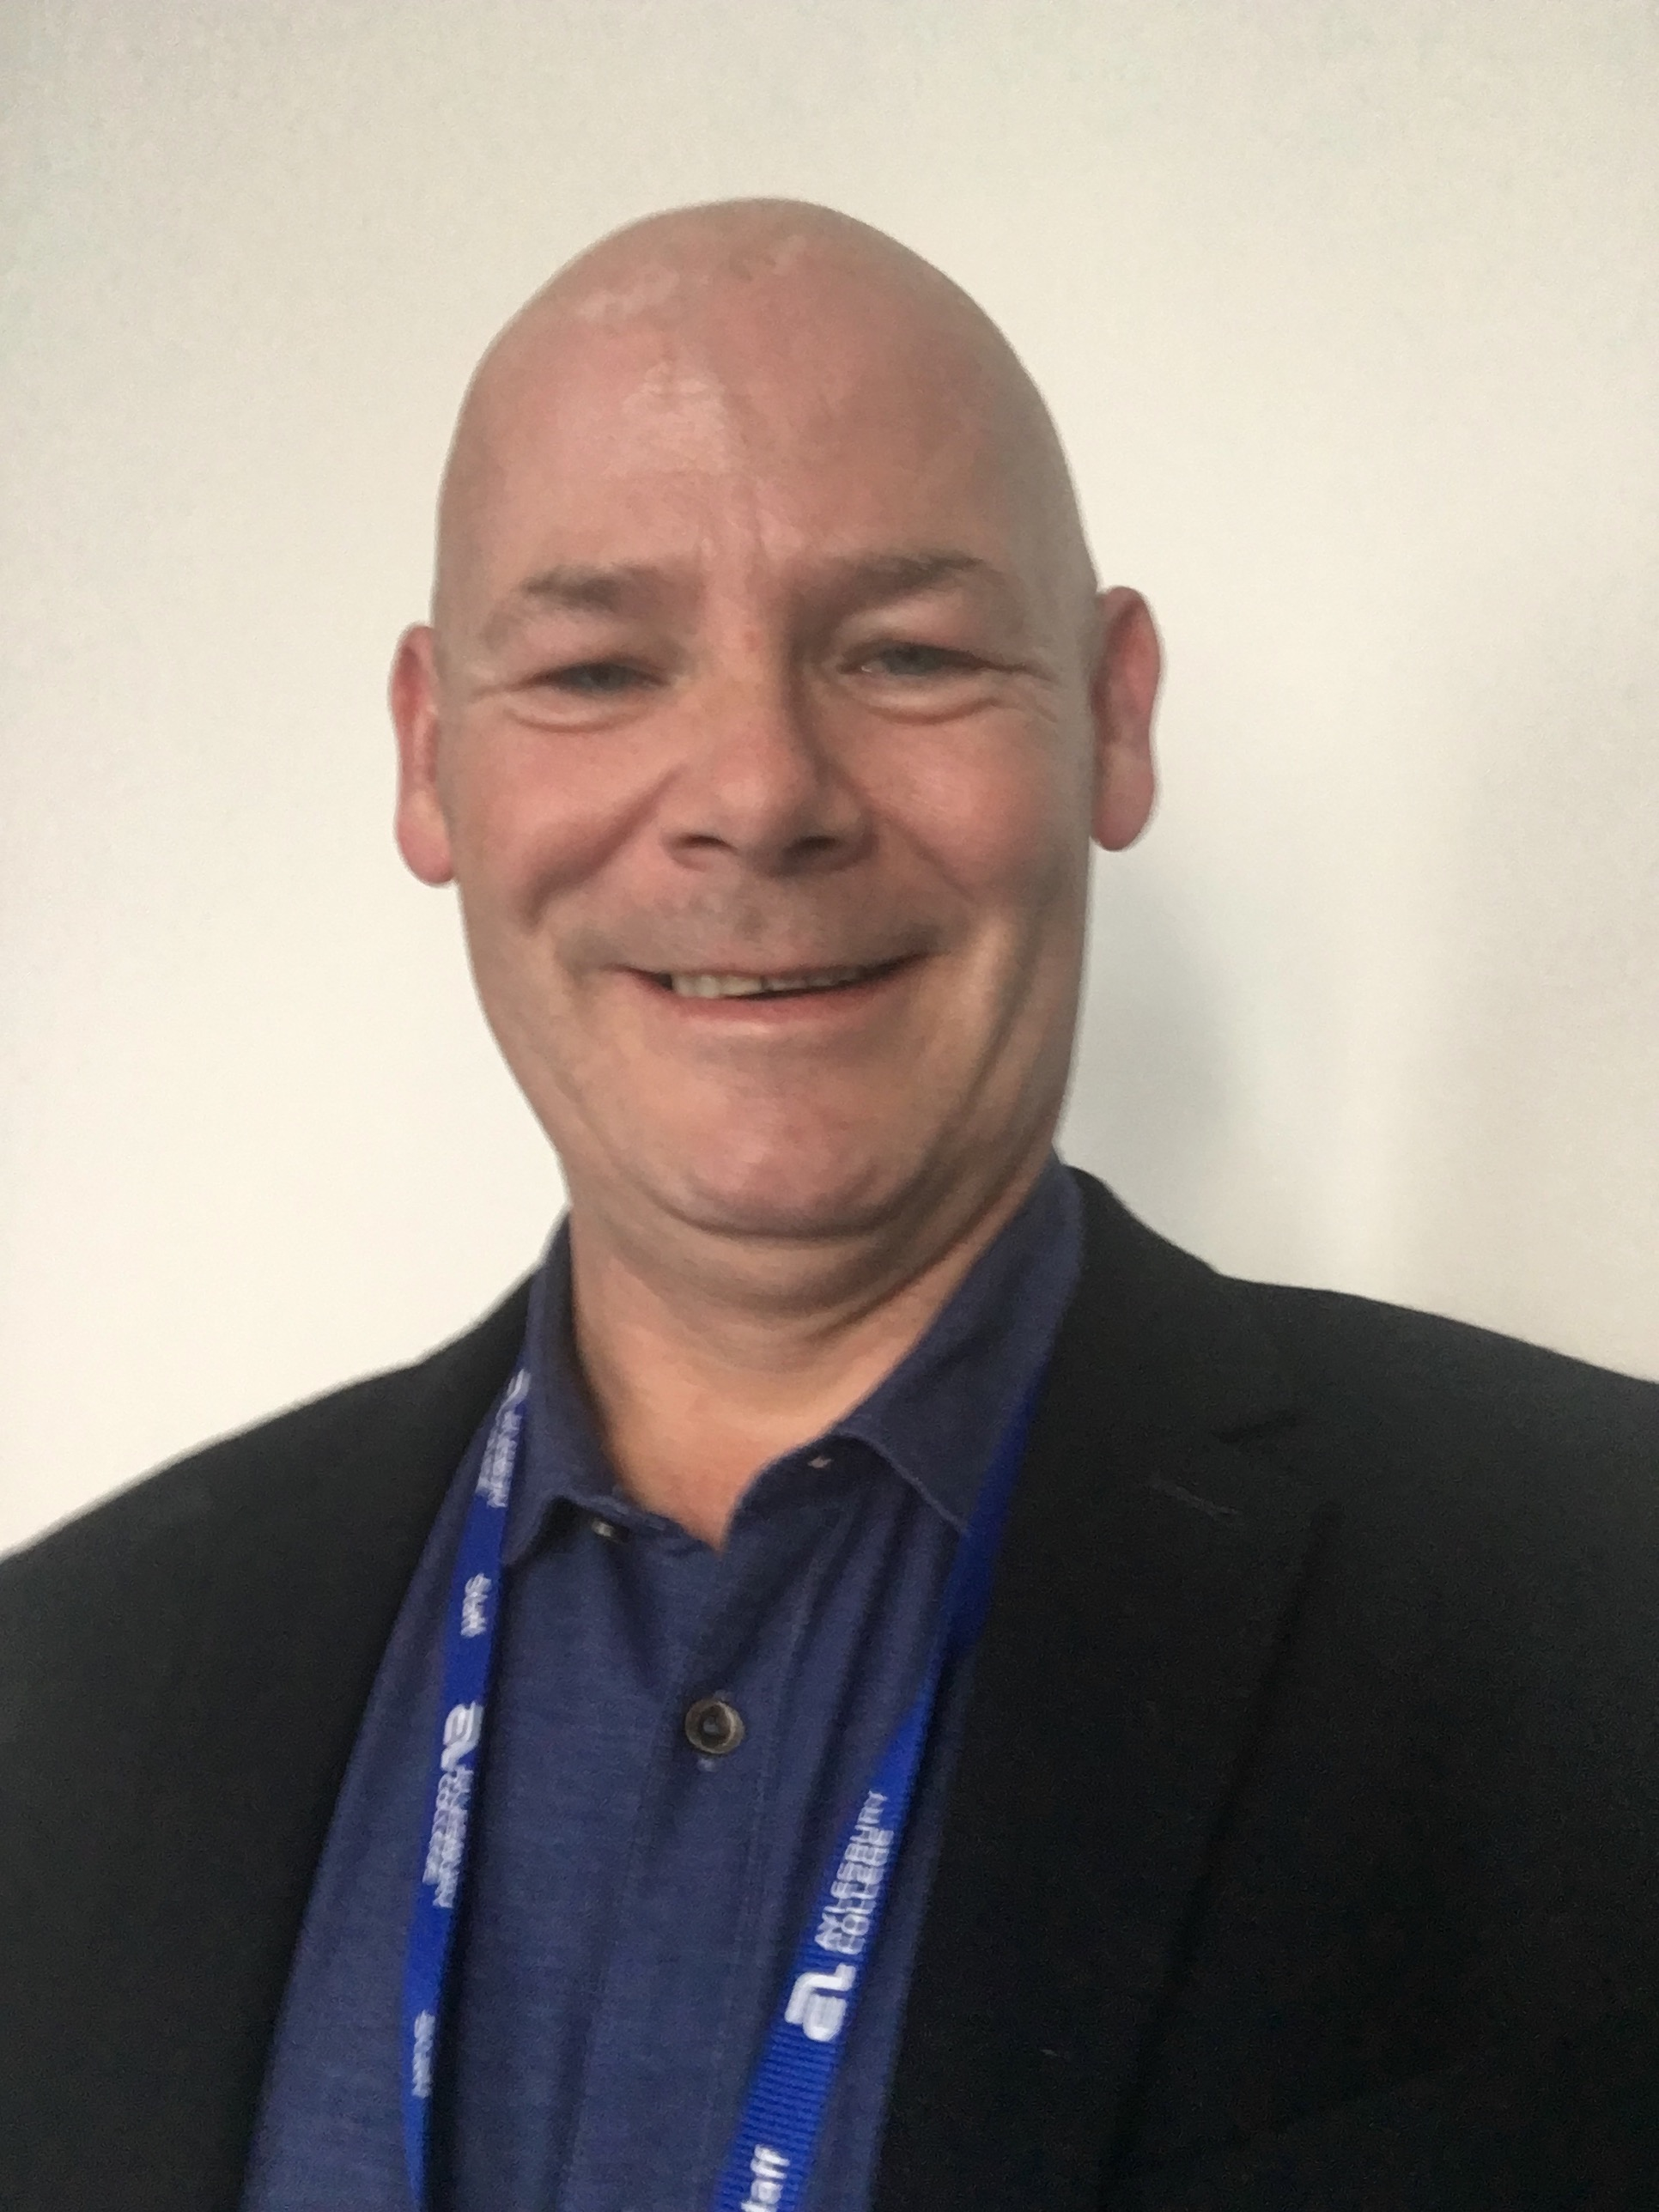 David Montague - Tutor & Standards Delivery Manager